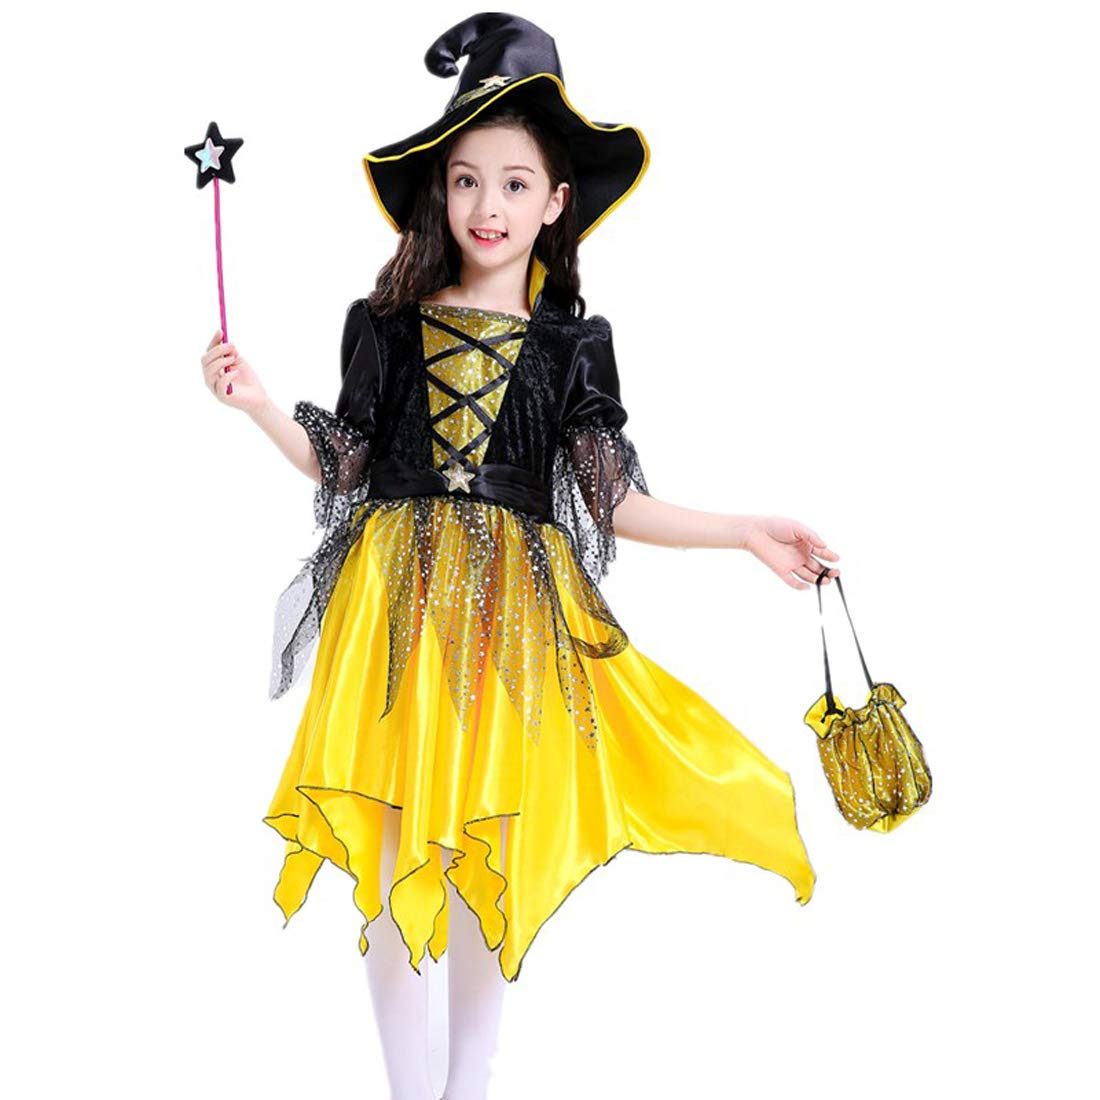 Witch Costumes for Girls, Child's Halloween Party Princess Fancy Dress with Witch Hat, Pumpkin Candy Bag & Magic Wand